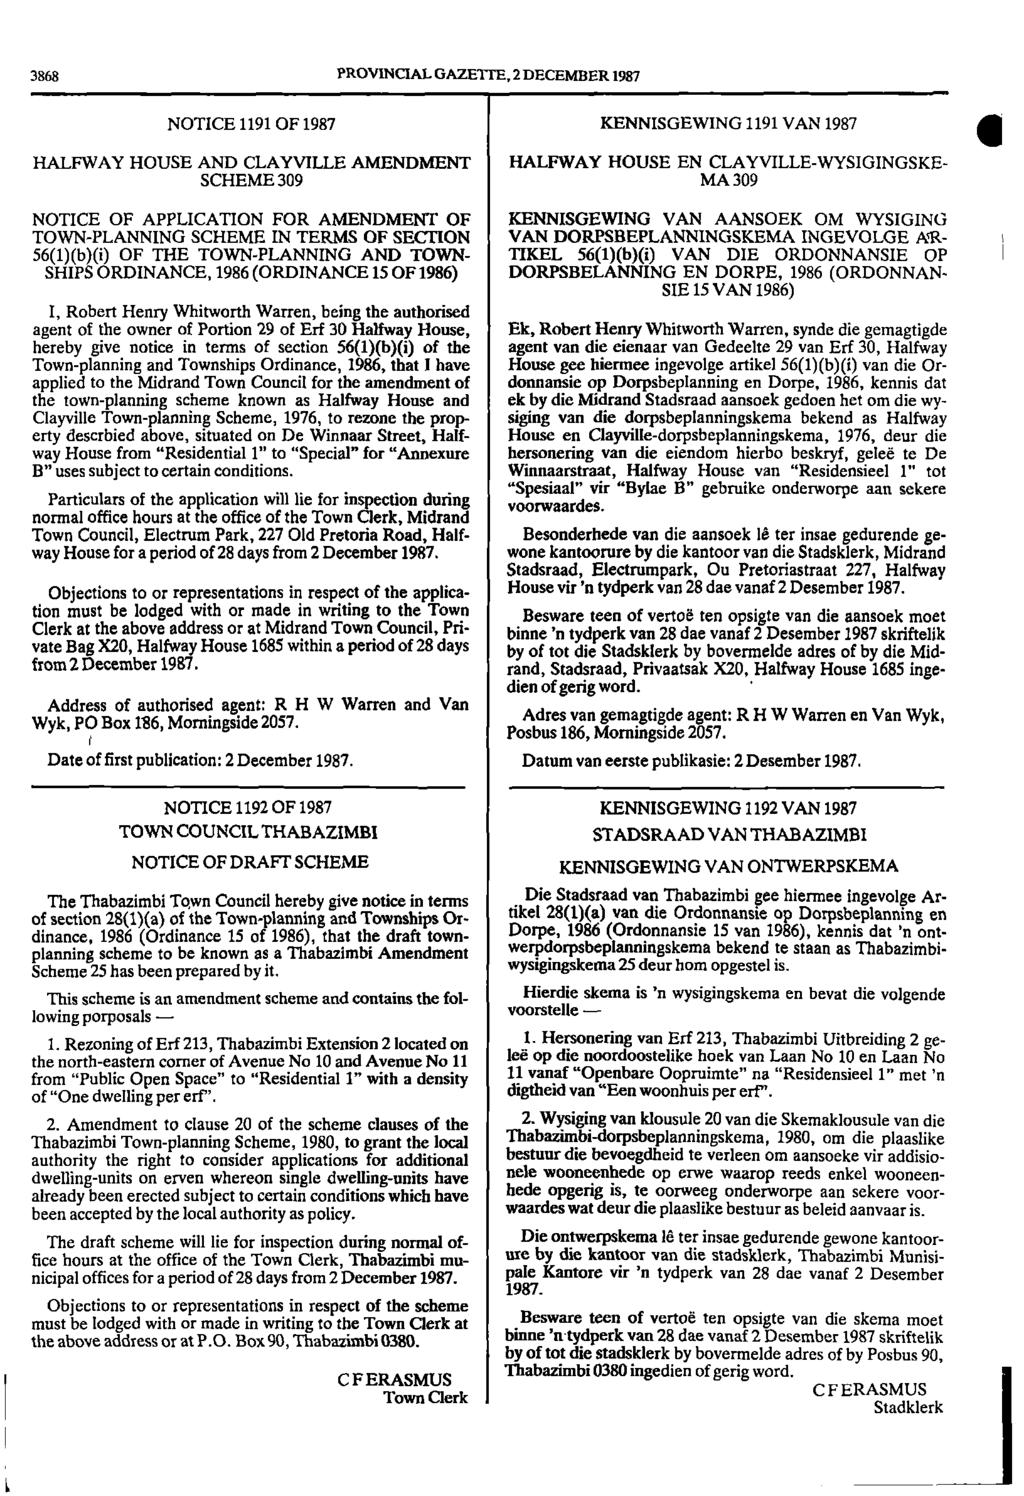 3868 PROVINCIAL GAZETTE, 2 DECEMBER 1987 NOTICE 1191 OF 1987 KENNISGEWING 1191 VAN 1987 HALFWAY HOUSE AND CLAYVILLE AMENDMENT HALFWAY HOUSE EN CLAYVILLEWYSIGINGSKE SCHEME 309 MA 309 1111 NOTICE OF